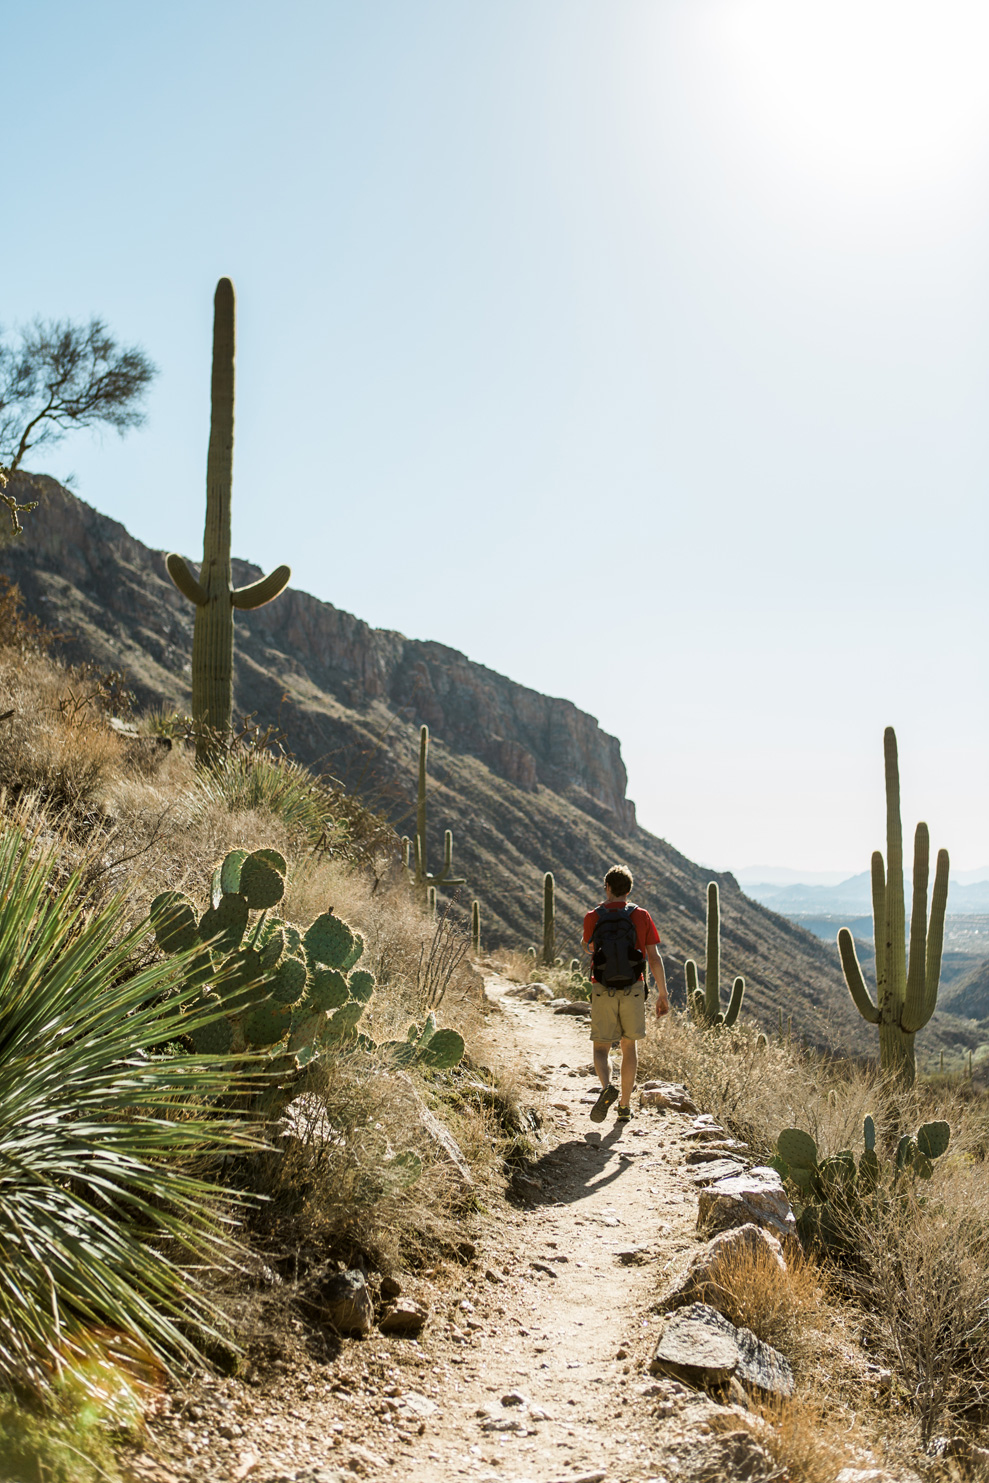 CindyGiovagnoli_Tucson_Arizona_Sabino_Canyon_Phone_Line_Trail_Uinta_Brewing_saguaro_cactus_desert_hiking-010.jpg